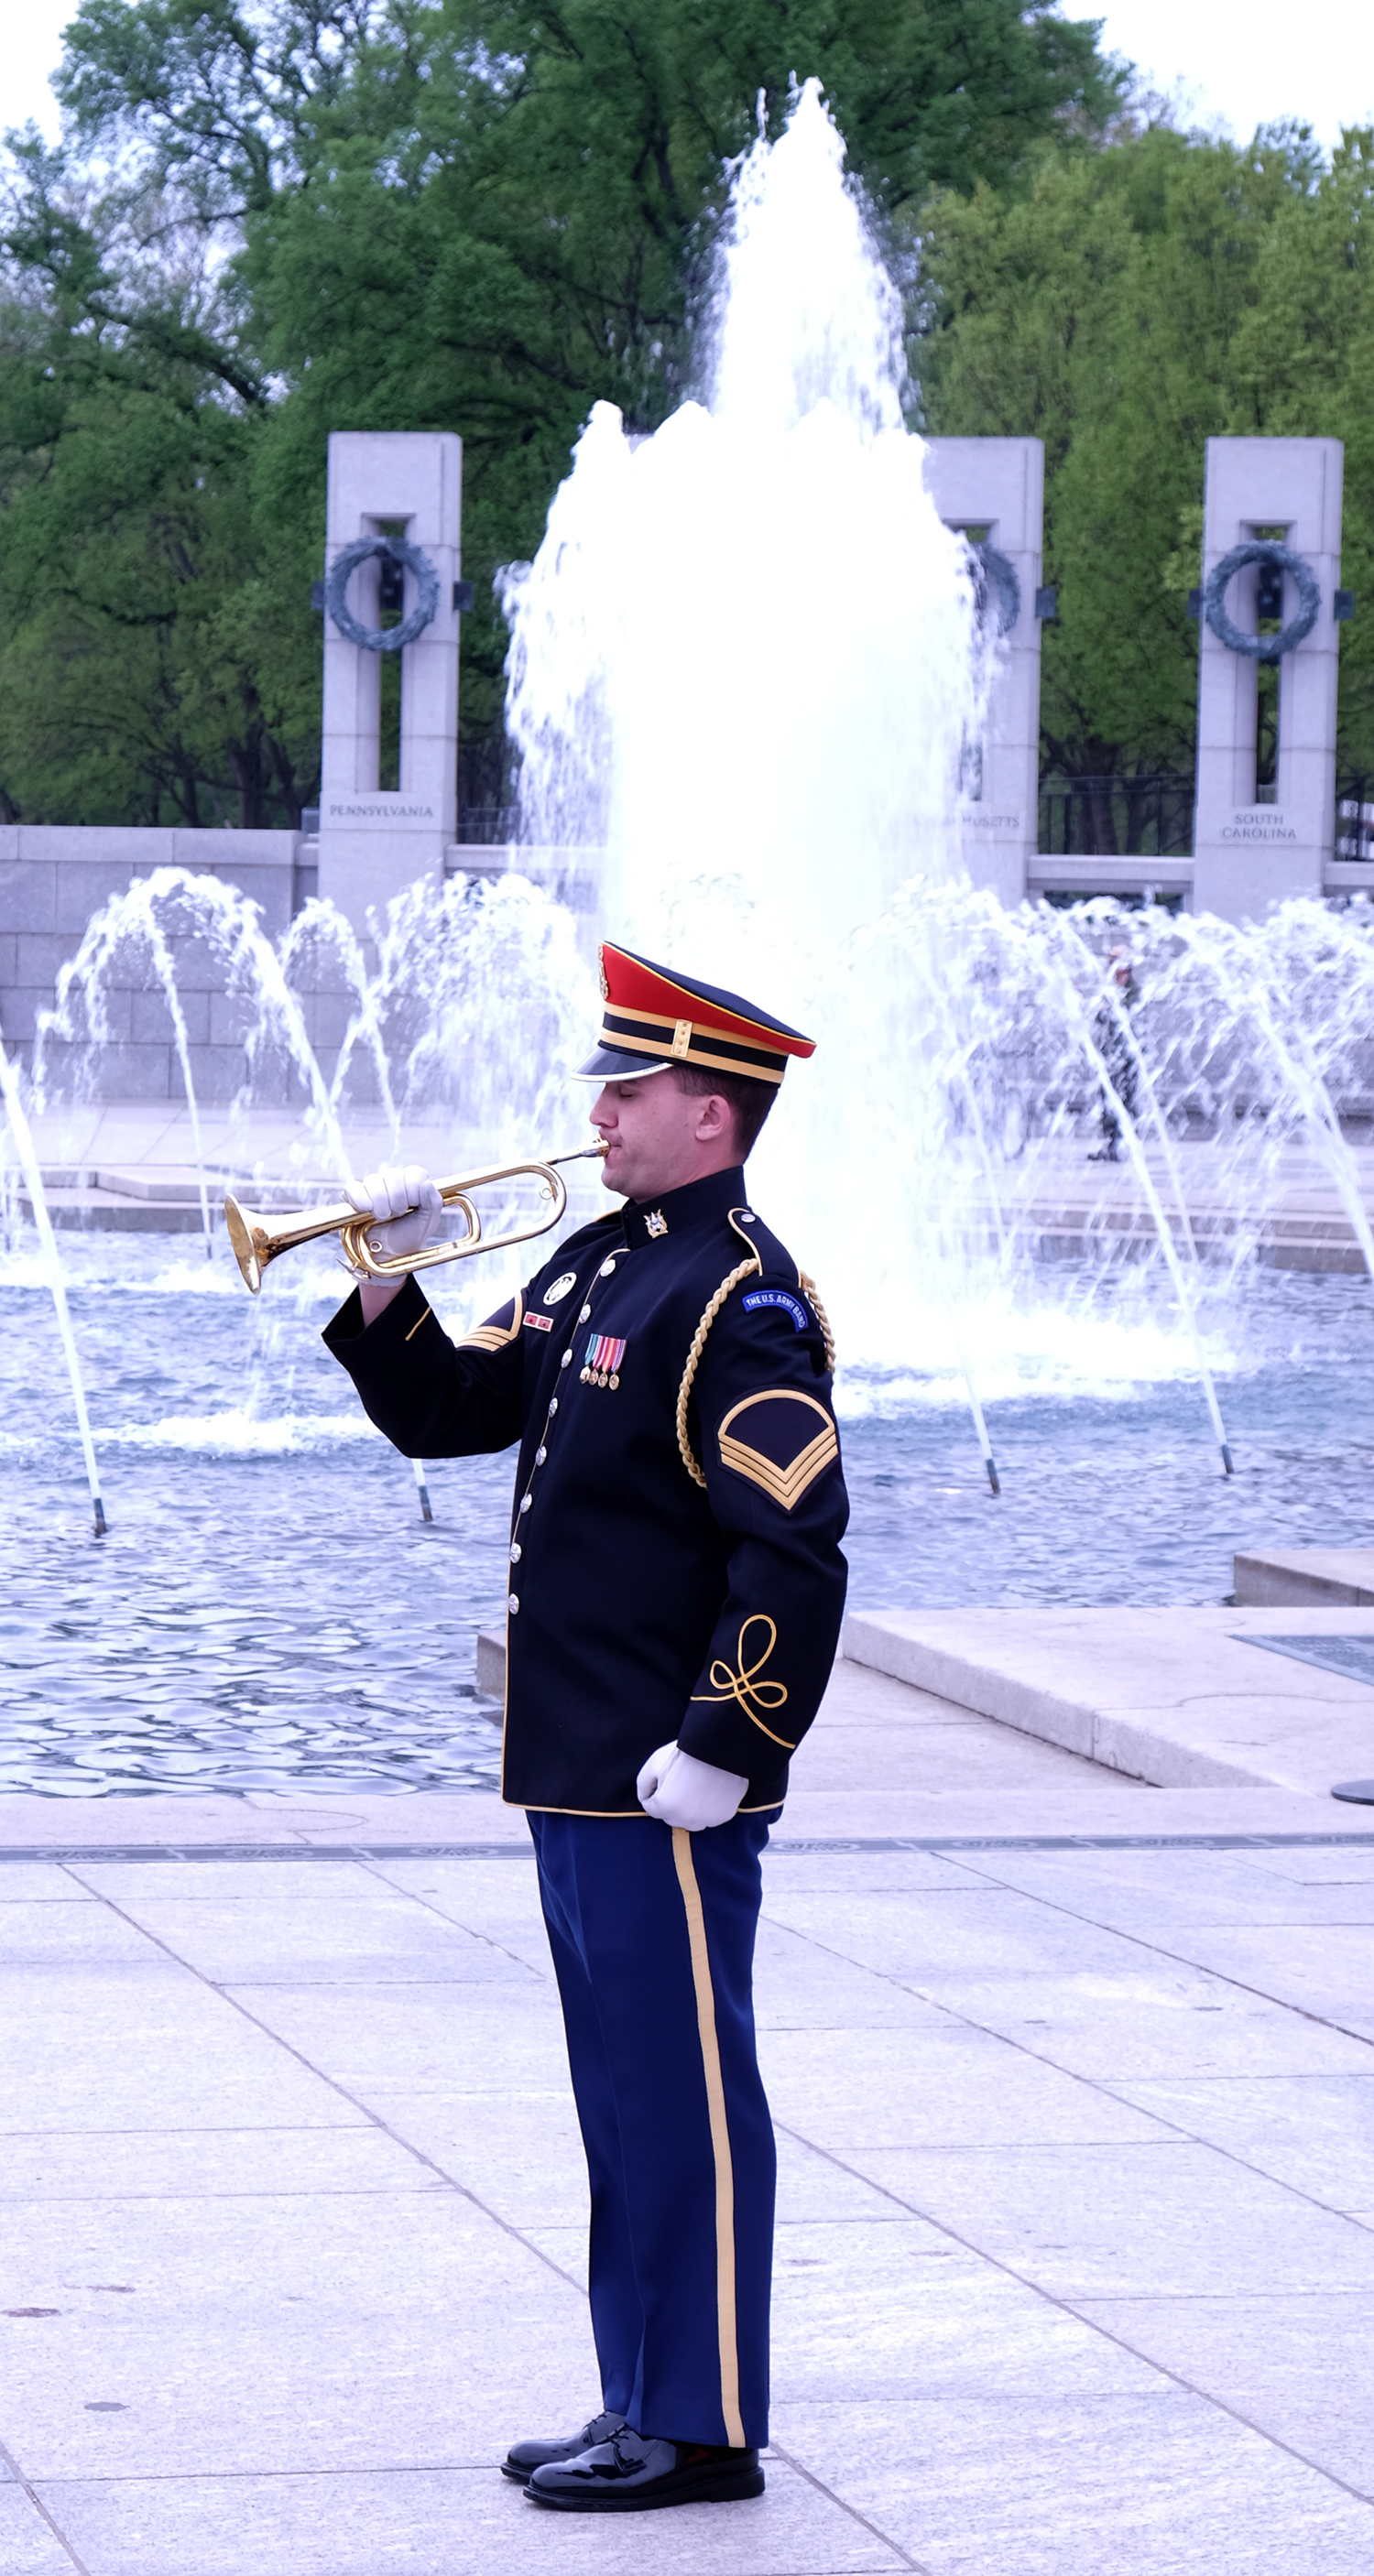 Bugle player playing Taps at the Honor Flight ceremony